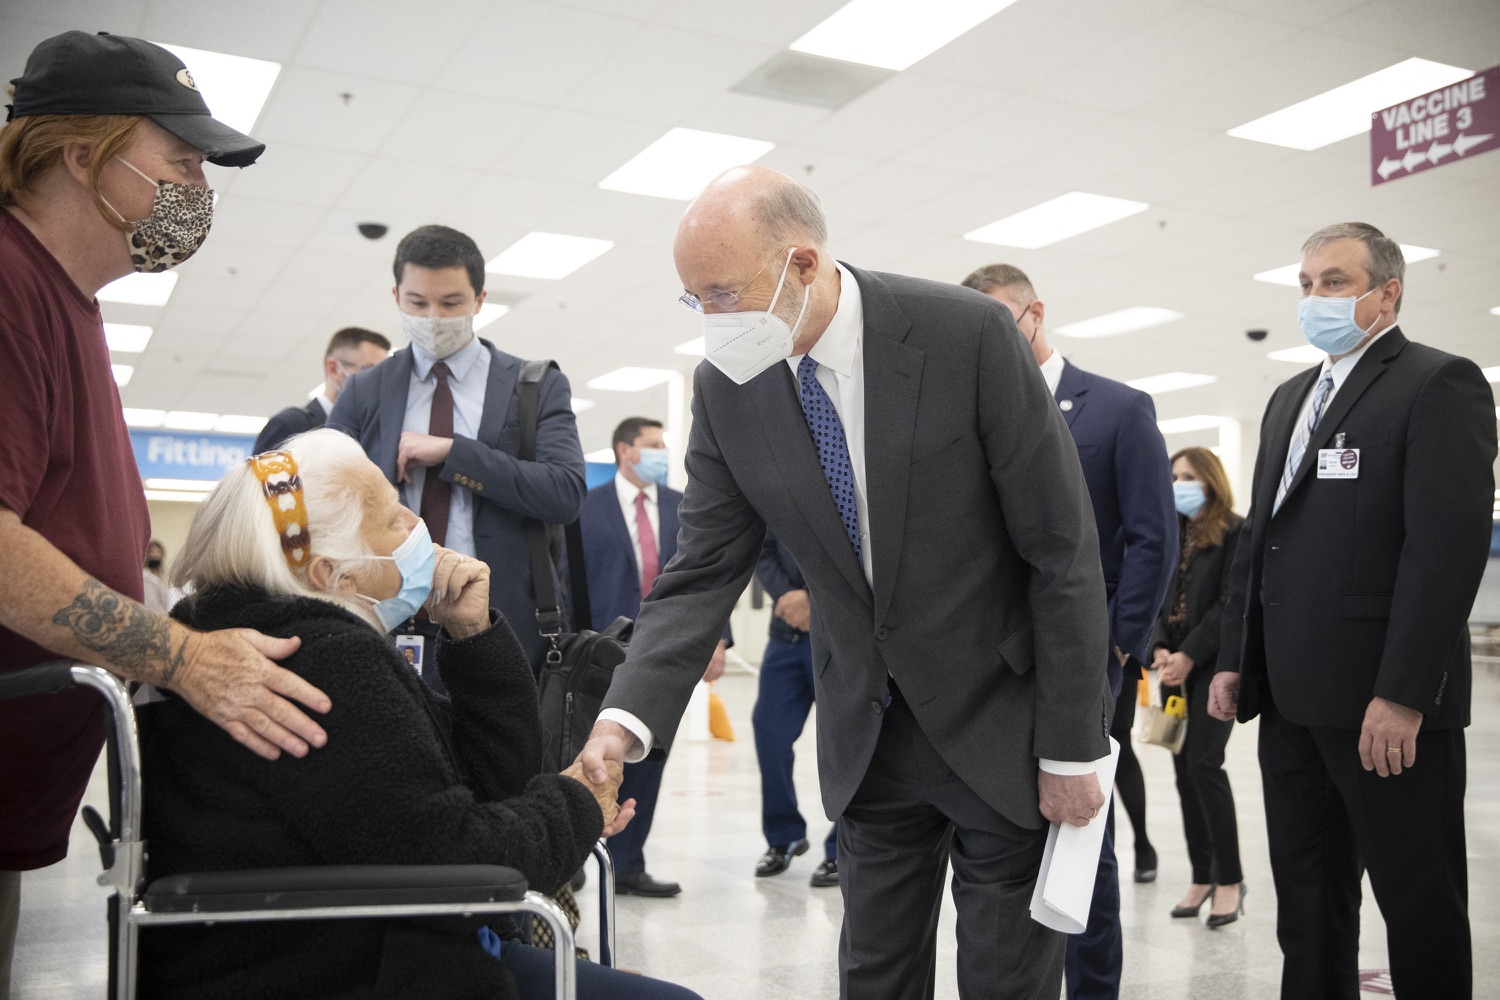 "<a href=""https://filesource.wostreaming.net/commonwealthofpa/photo/18712_gov_vaccines_dz_004.jpg"" target=""_blank"">⇣ Download Photo<br></a>Pennsylvania Governor Tom Wolf touring the vaccine facility with  Brook Ward, Washington Health System CEO & President and Pennsylvania State Representative Tim O'Neal.Continuing to visit COVID-19 vaccine clinics around the state, Governor Tom Wolf toured a clinic at the Washington Crown Center in Washington County today. The clinic is one of three operated by the Washington Health System (WHS) serving rural communities in southwestern Pennsylvania.  North Franklin Township, PA  April 28, 2021"